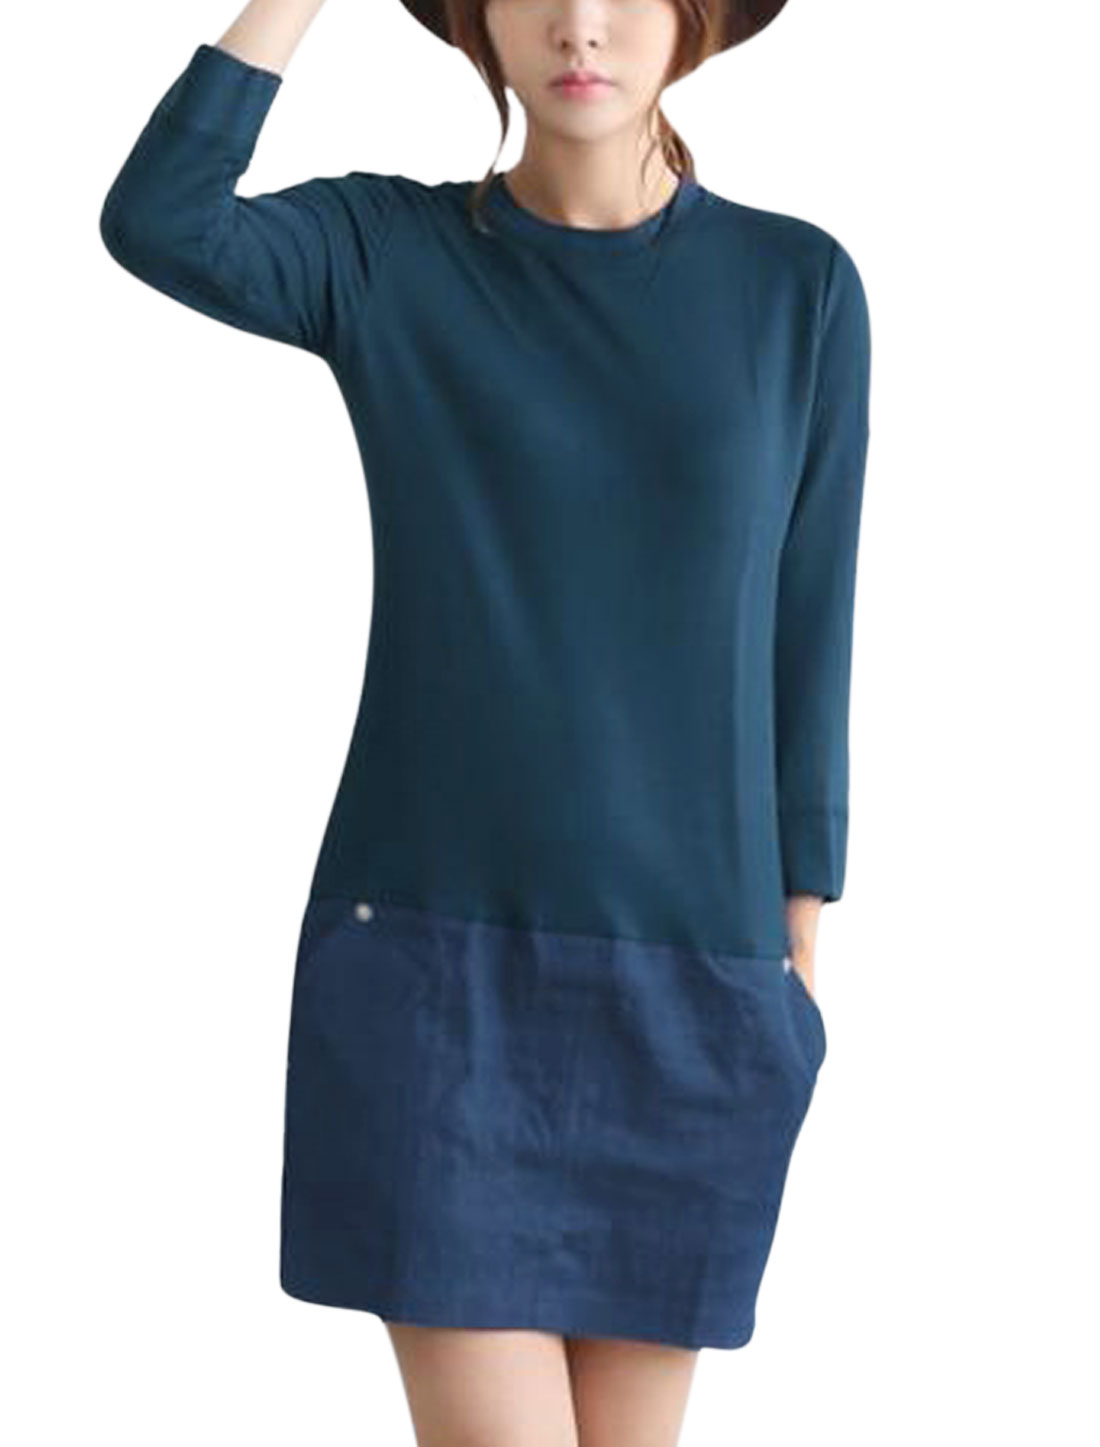 Women Round Neck 3/4 Sleeve Denim Spliced Casual Straight Dress Navy Blue M